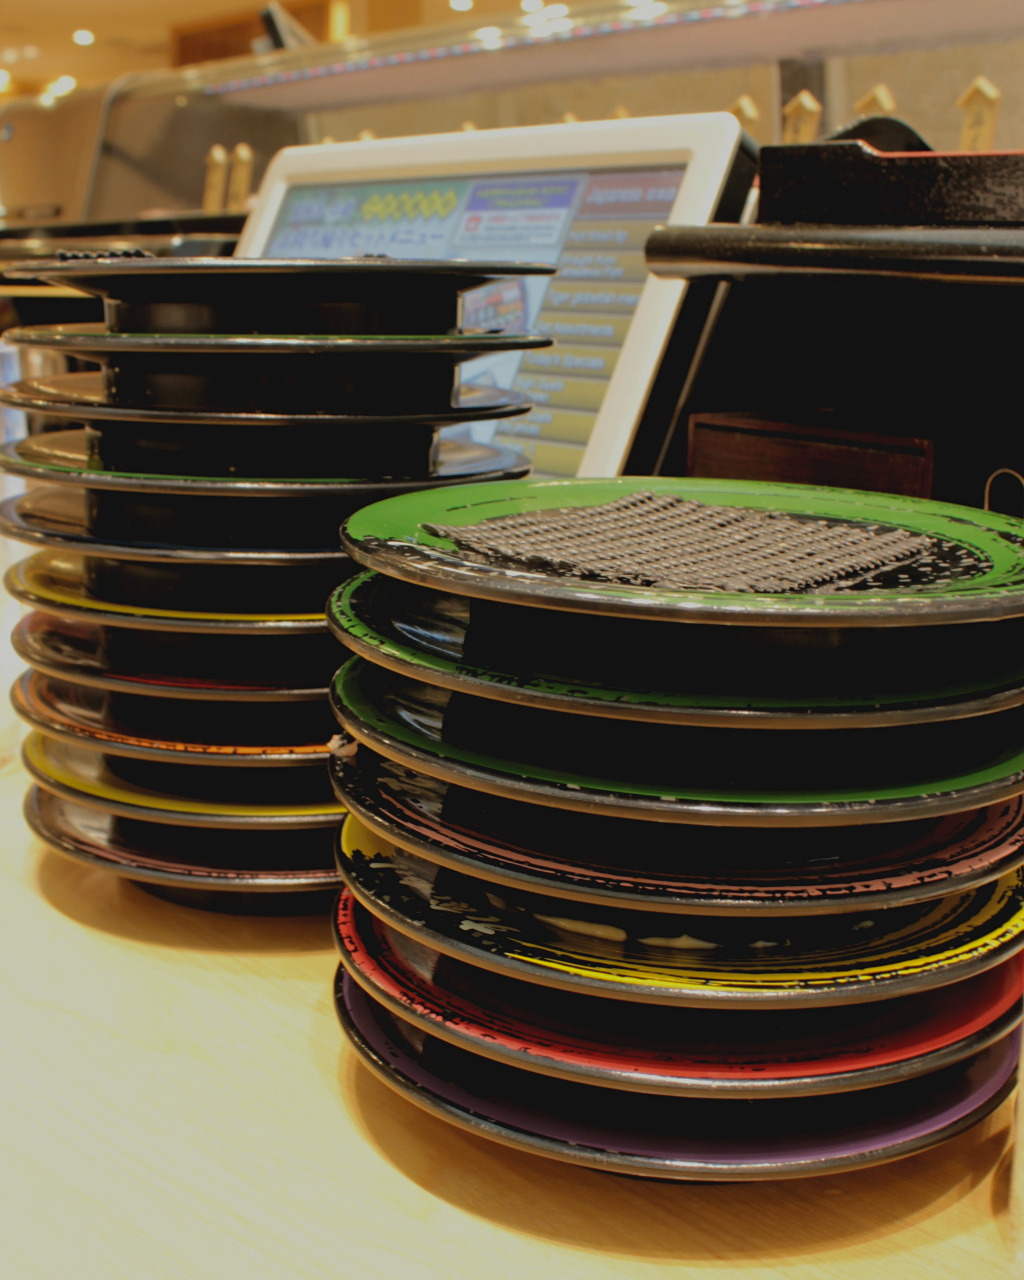 Stacks of eaten sushi at Kuine in Kanazawa, Japan